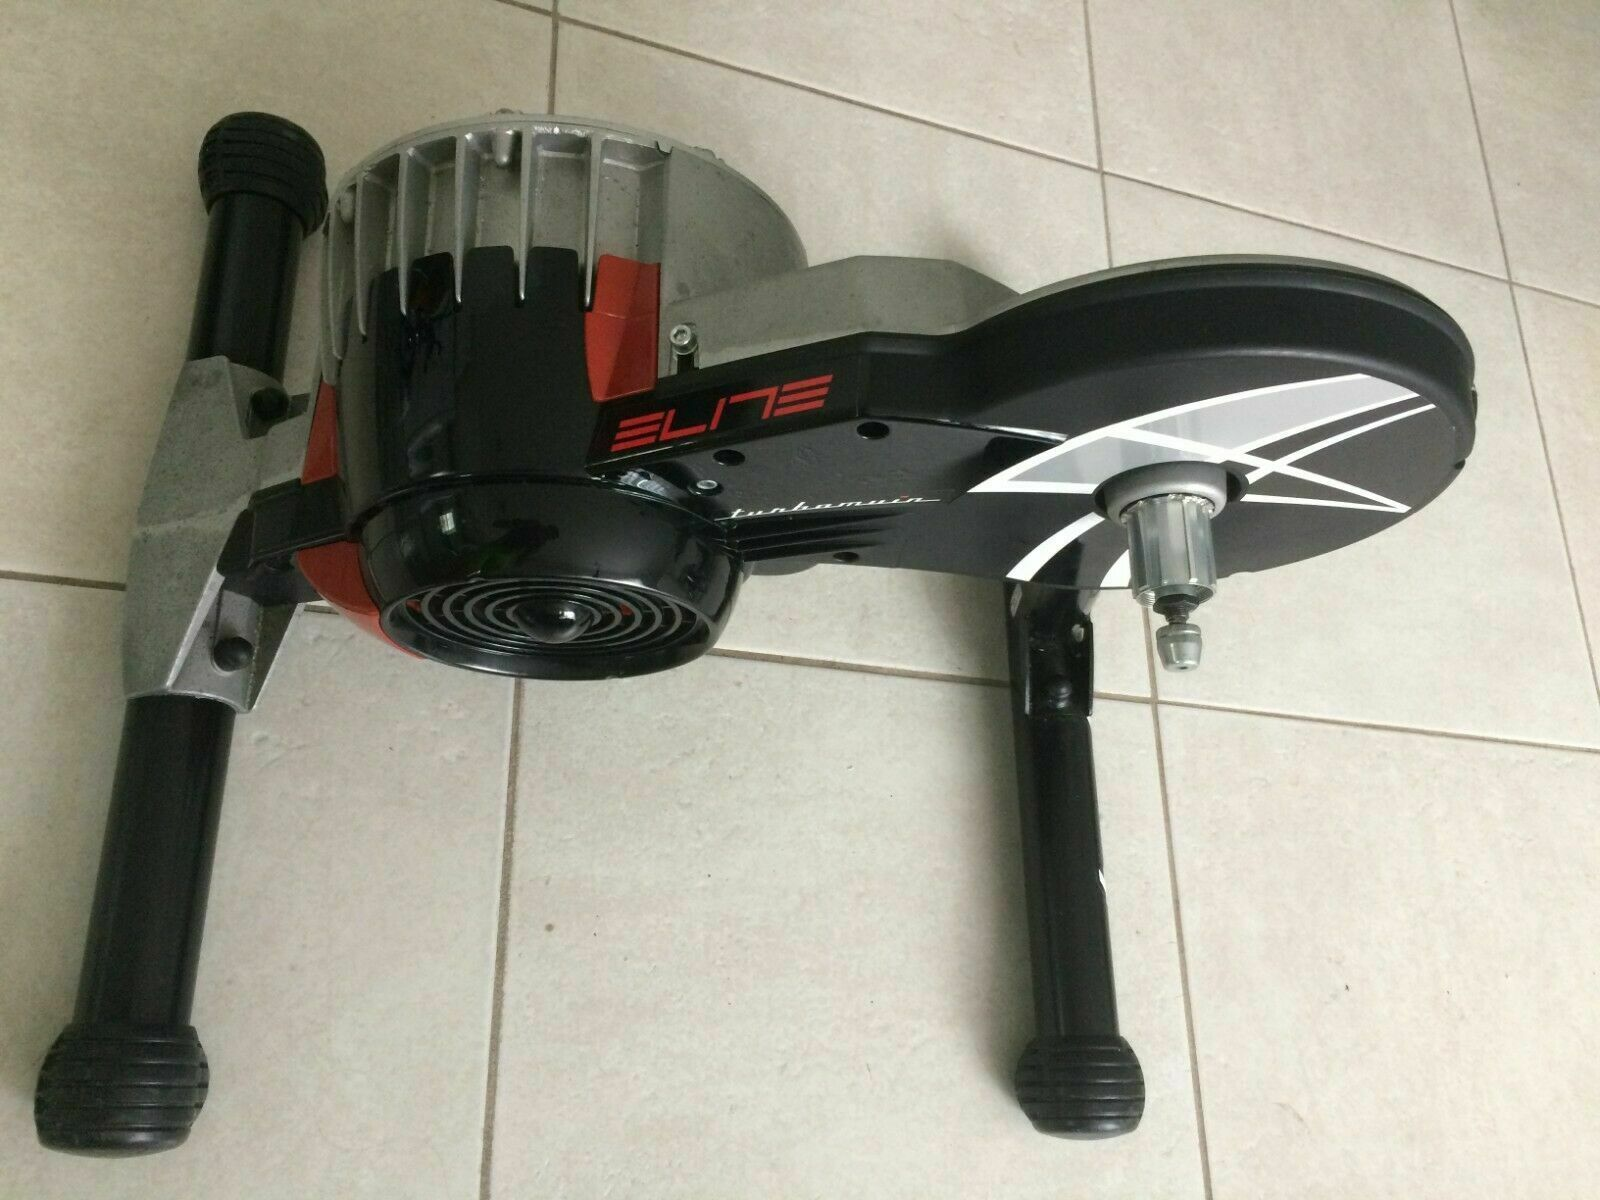 ELITE DIRECT FLUID TRAINER TURBO MUIN MISURO INDOOR BIKE (Used - 450 USD)